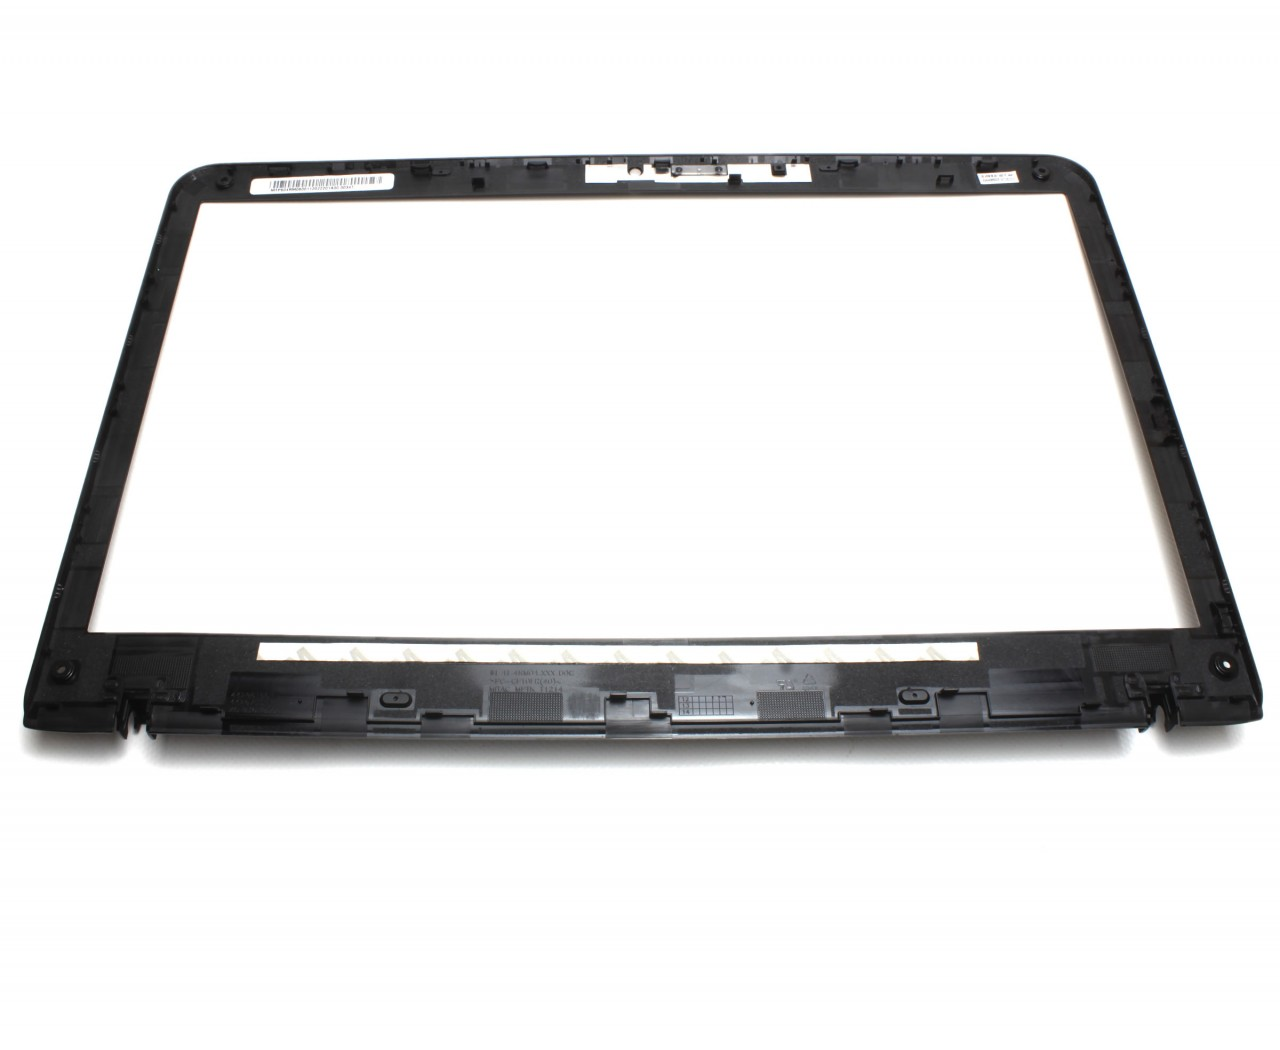 Rama Display Sony 3IHK5BHN000 Bezel Front Cover Neagra imagine powerlaptop.ro 2021